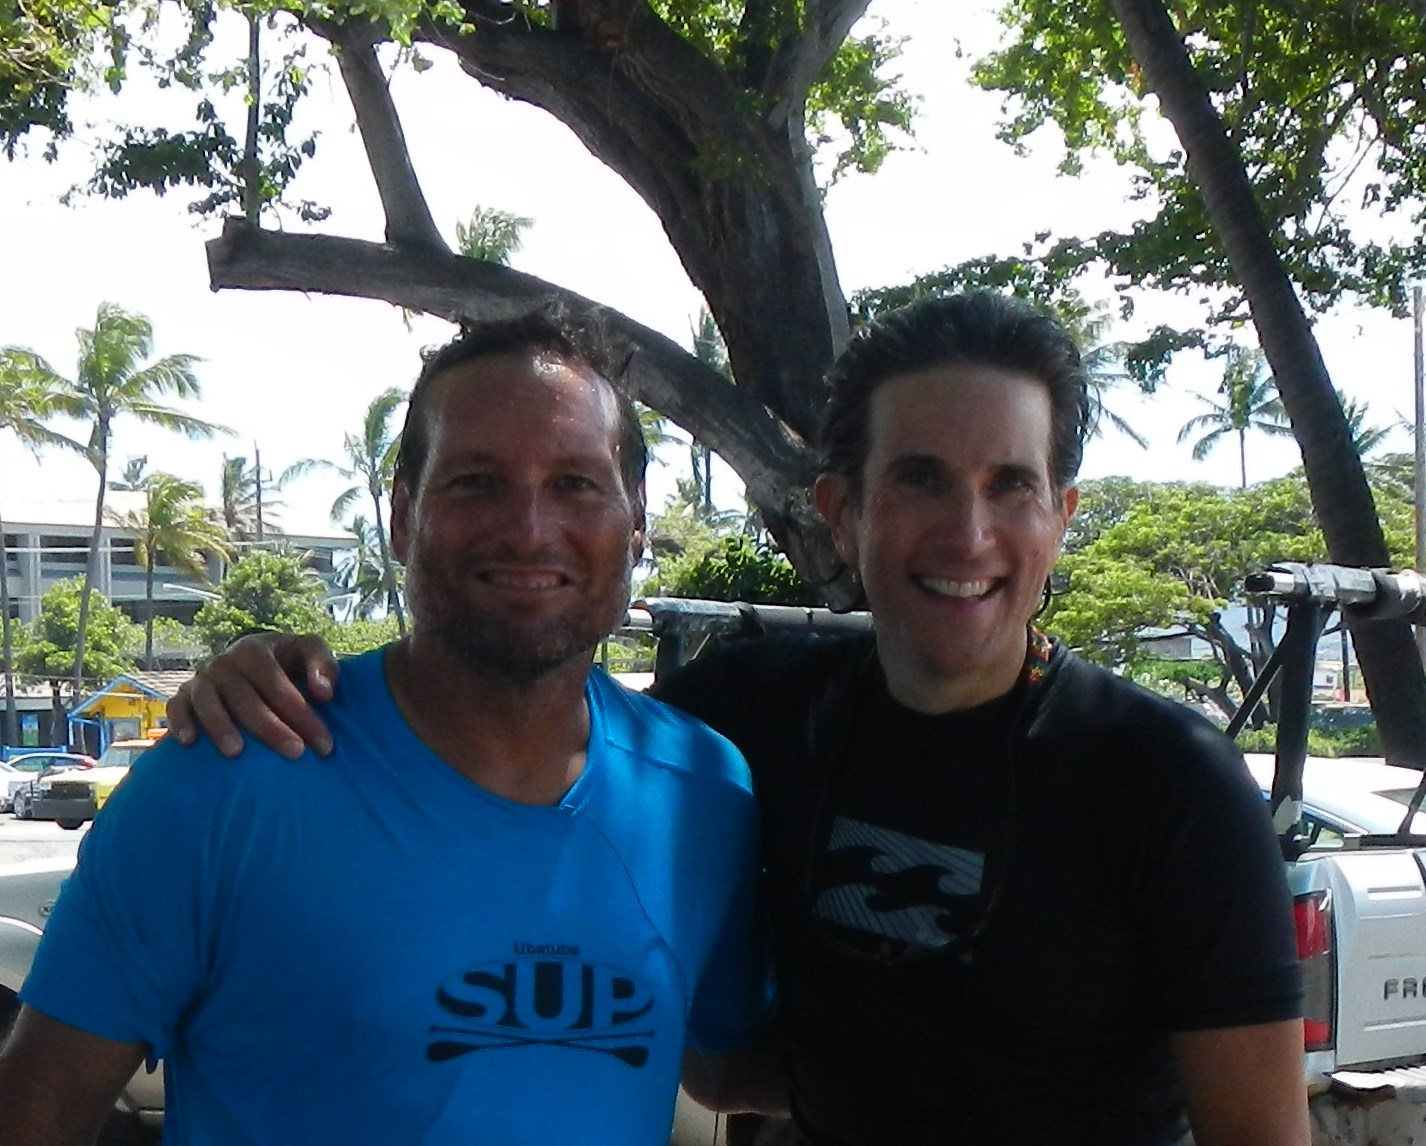 With Dave Kalama in Maui